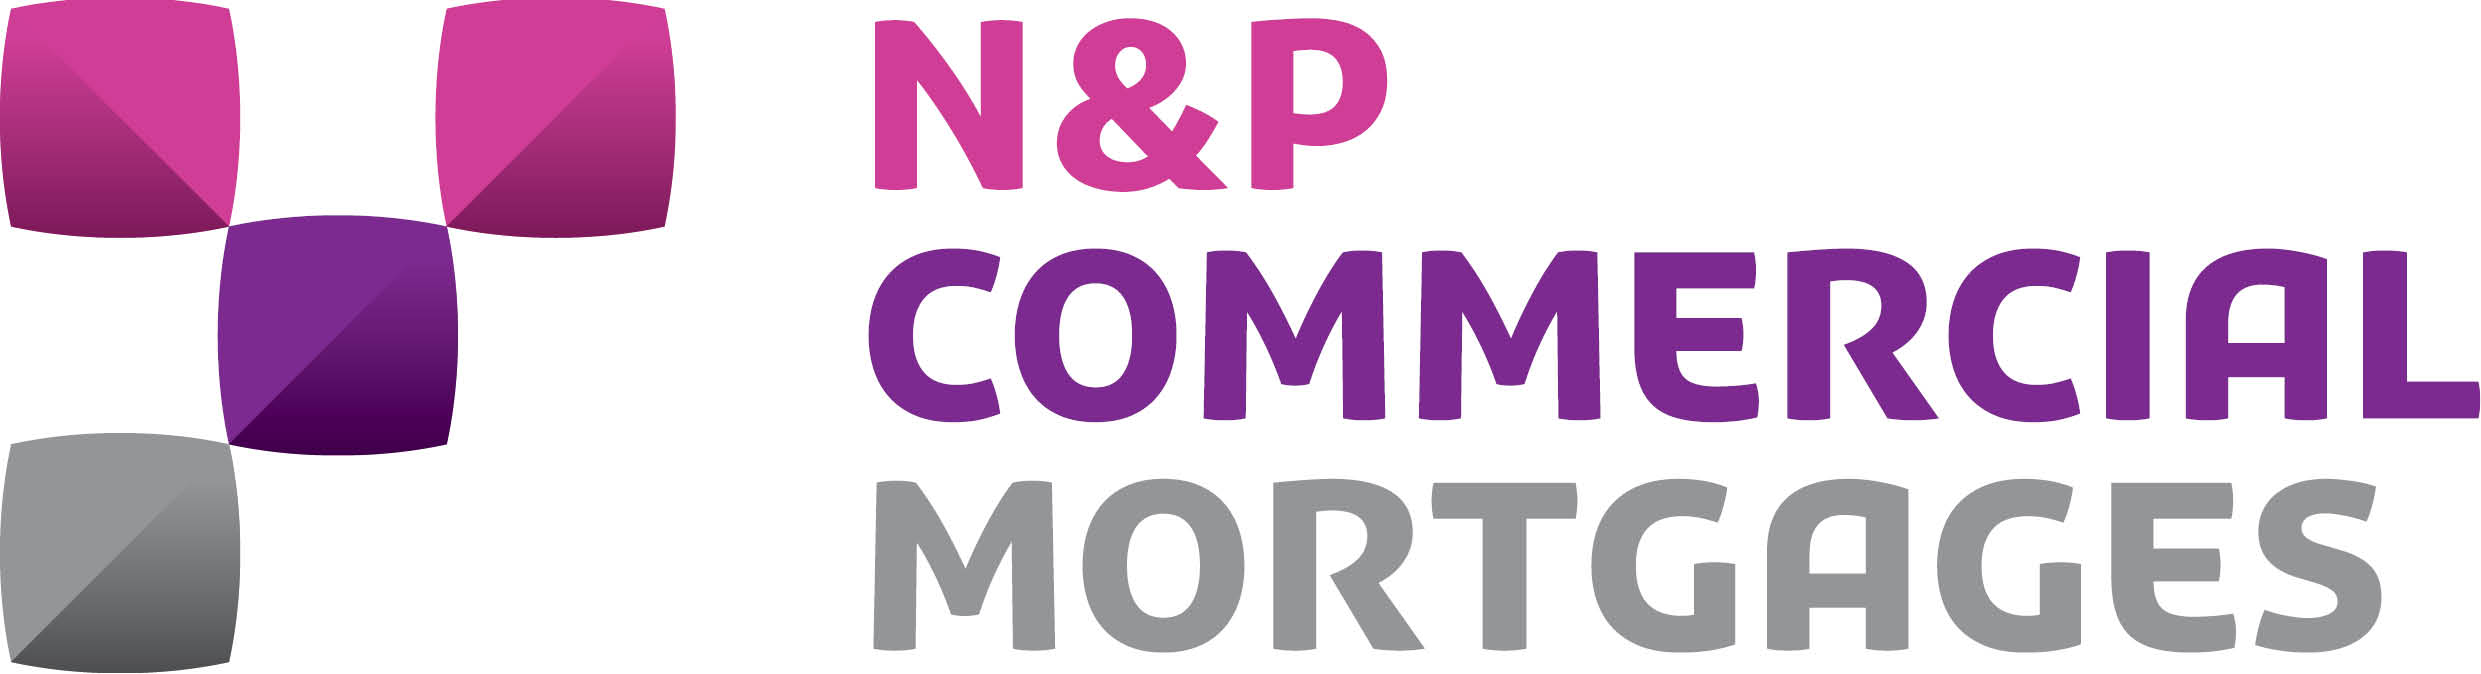 2014/04/NandP_Commercial_Mortgage_Logo_Primary_CMYK300.jpg